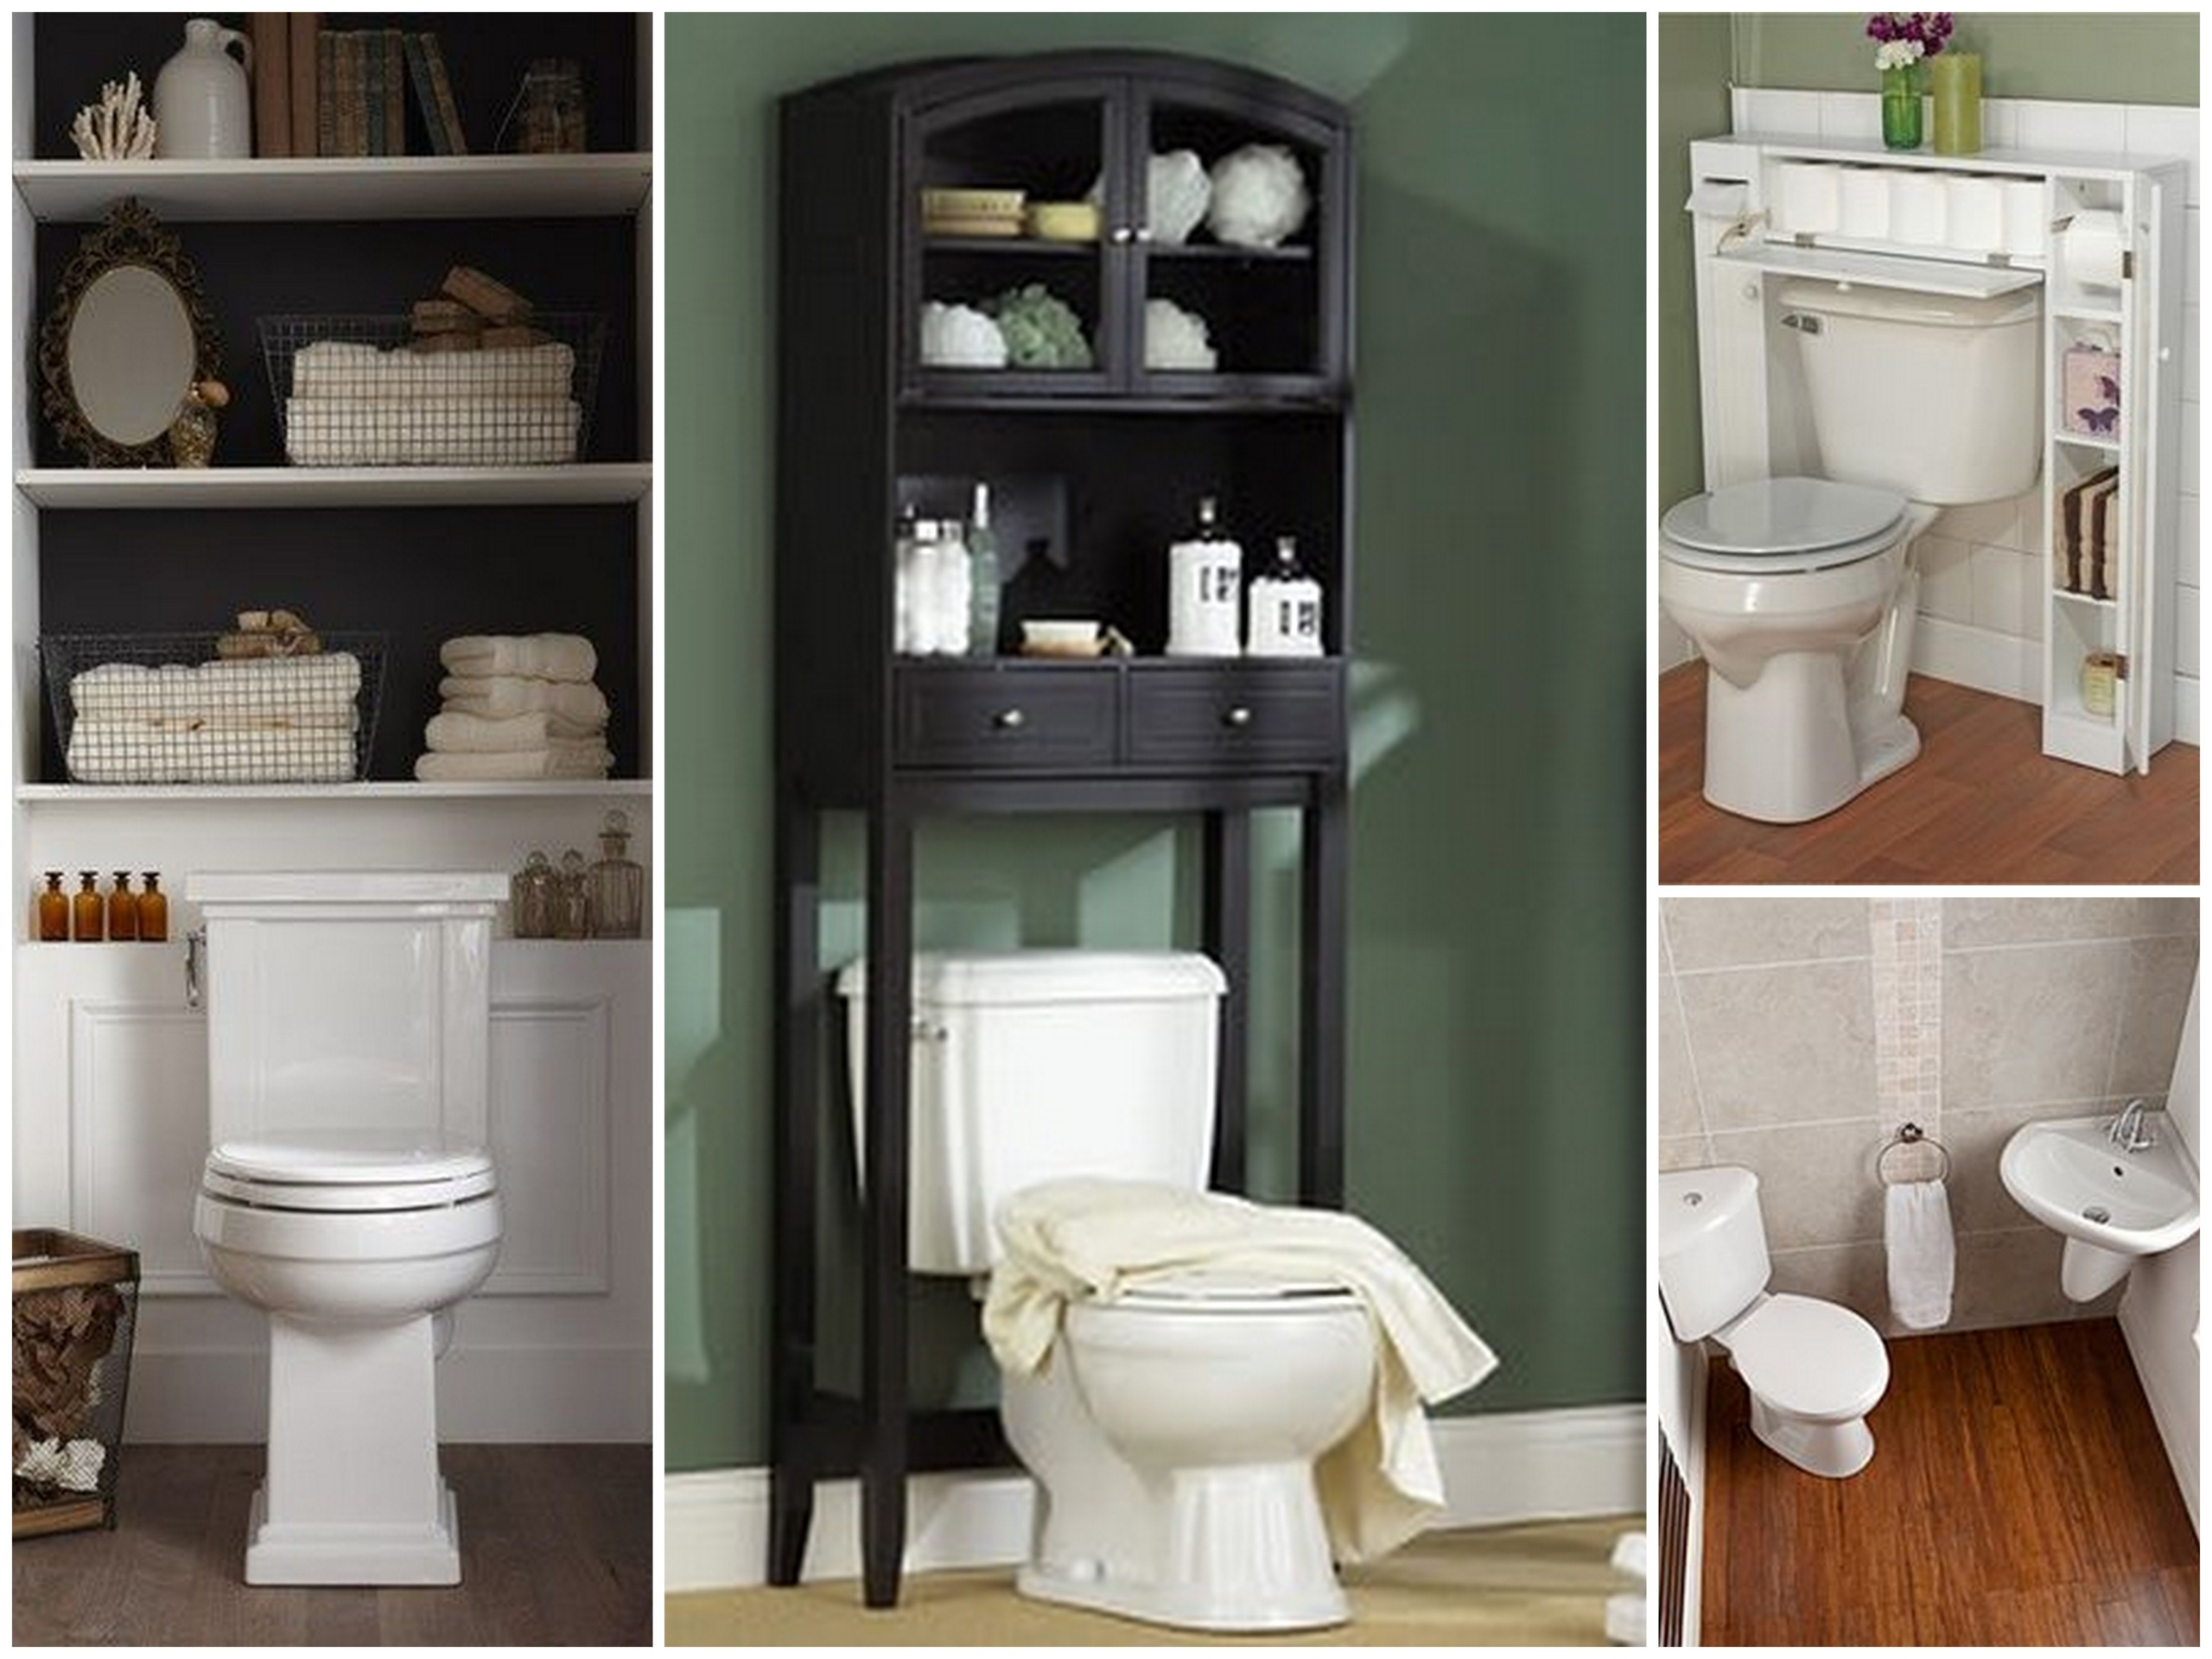 Superbe Over Toilet Bathroom Organizer Over The Toilet Space Saver Bath